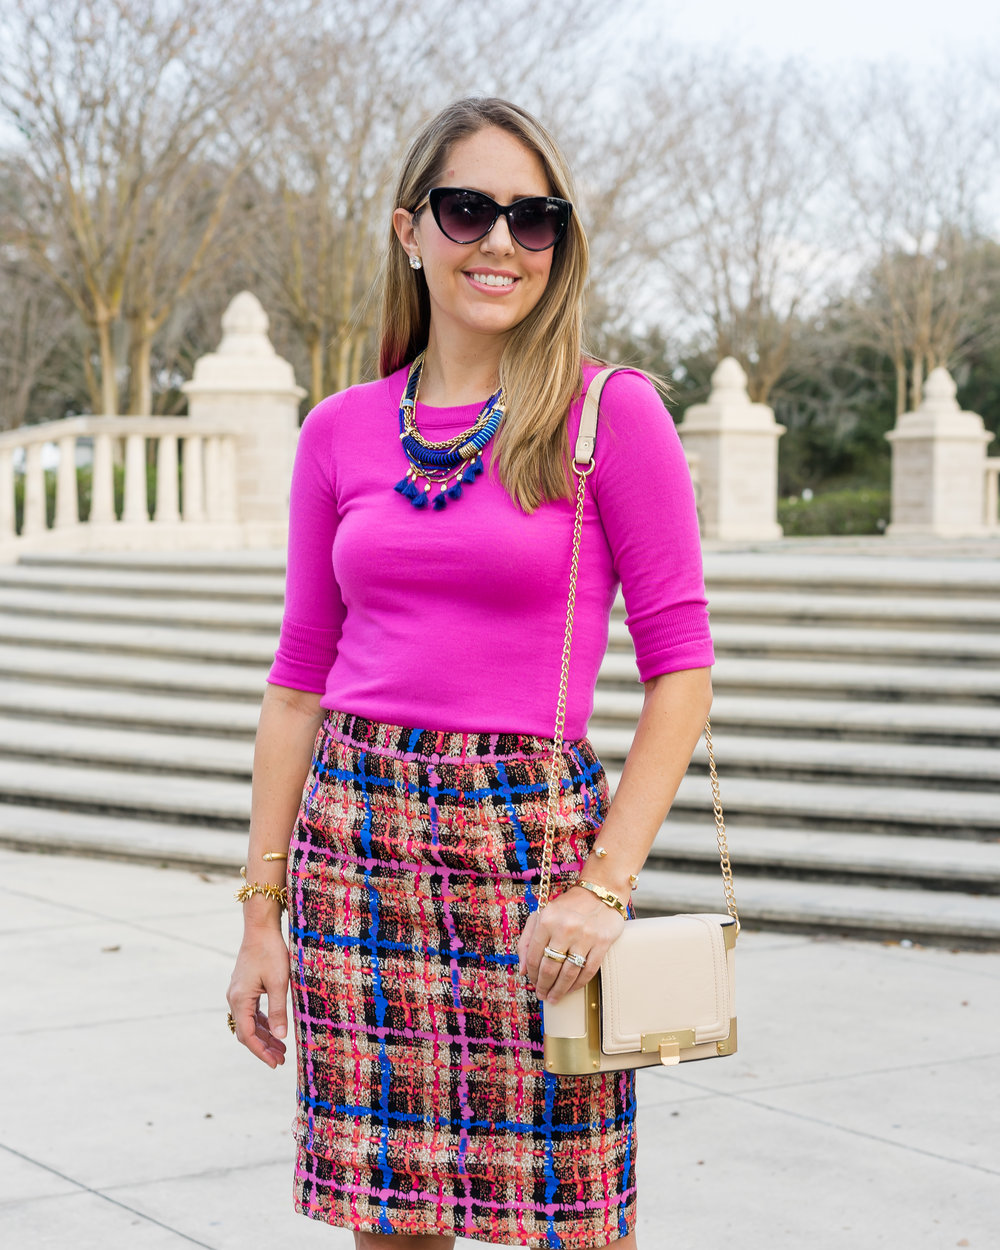 Pink sweater, pencil skirt, cobalt necklace